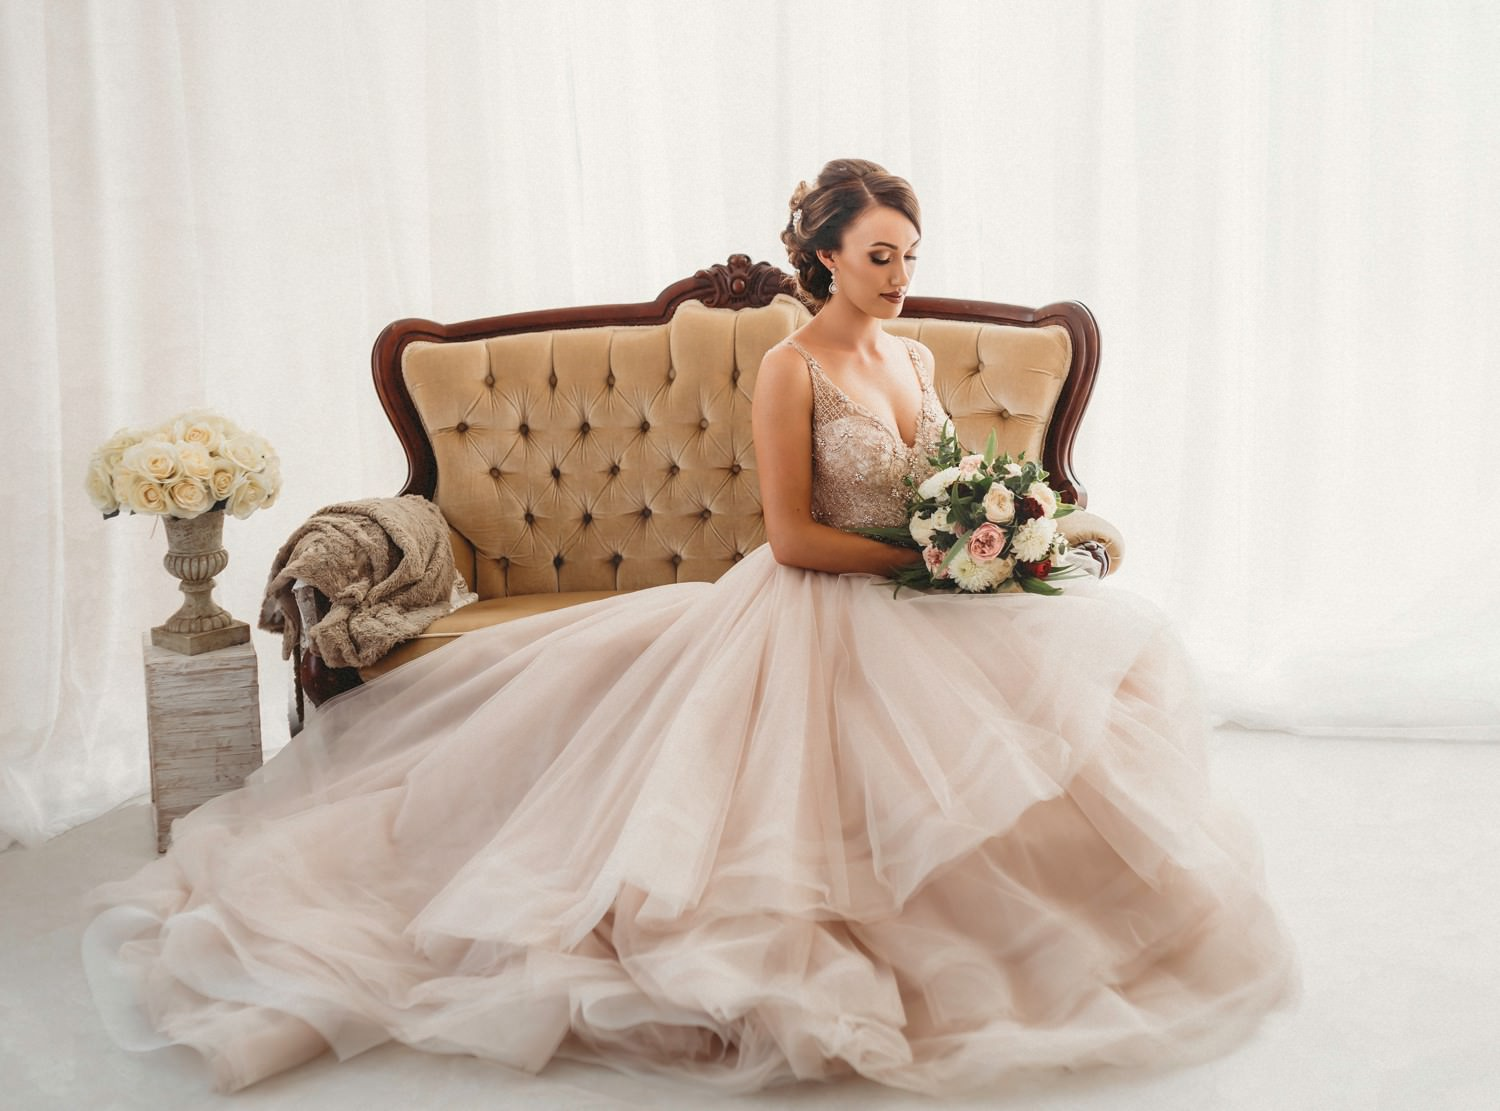 Bride in wedding gown sitting on velvet chair